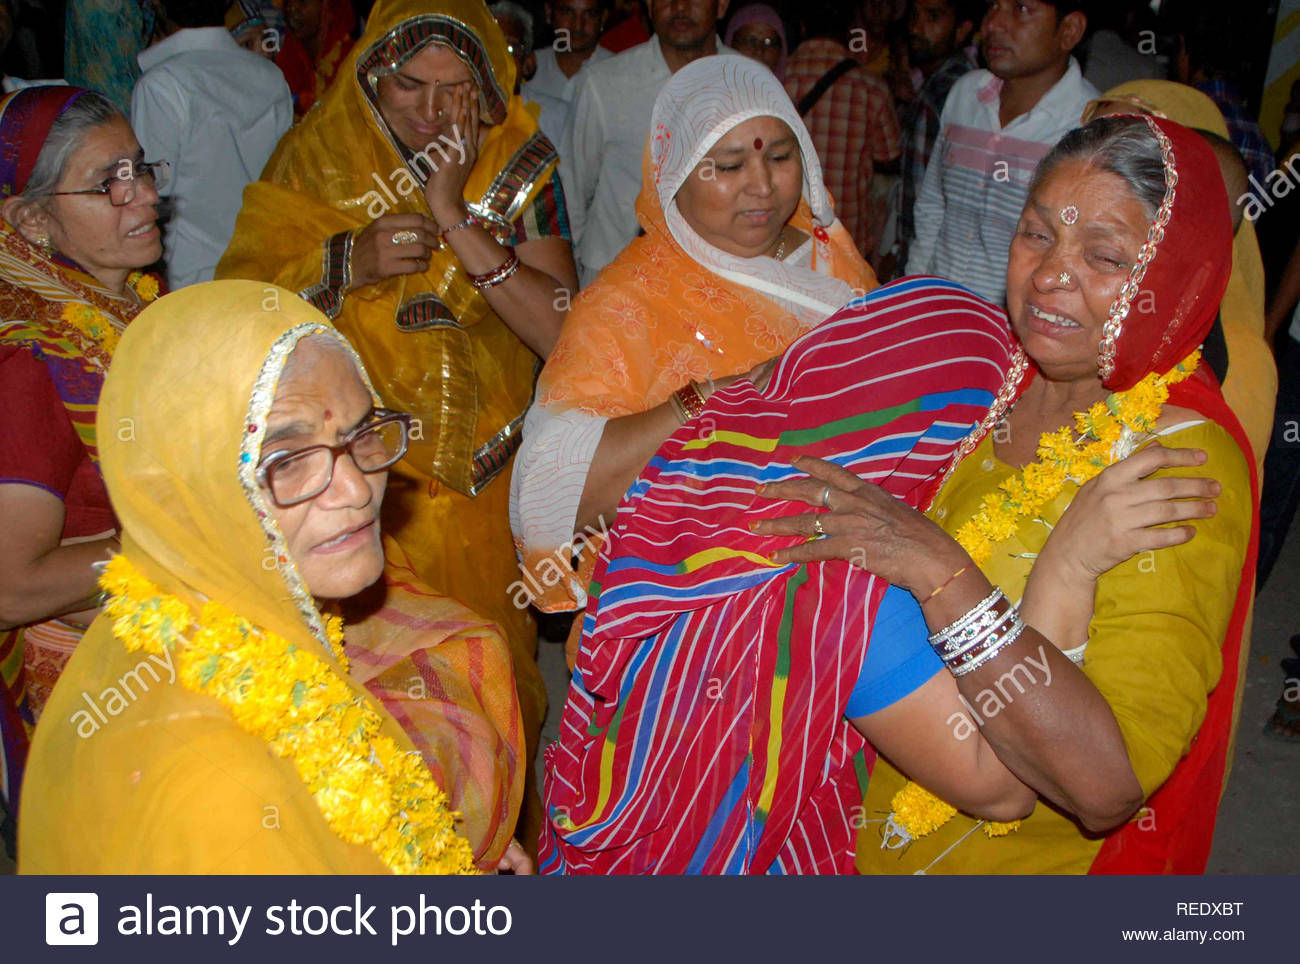 A pilgrim who was rescued and evacuated from flood-ravaged Uttarakhand, meets his relatives on arrival at Jodhpur, Rajasthan, India on June 25, 2013. (Sunil Verma) - Stock Image